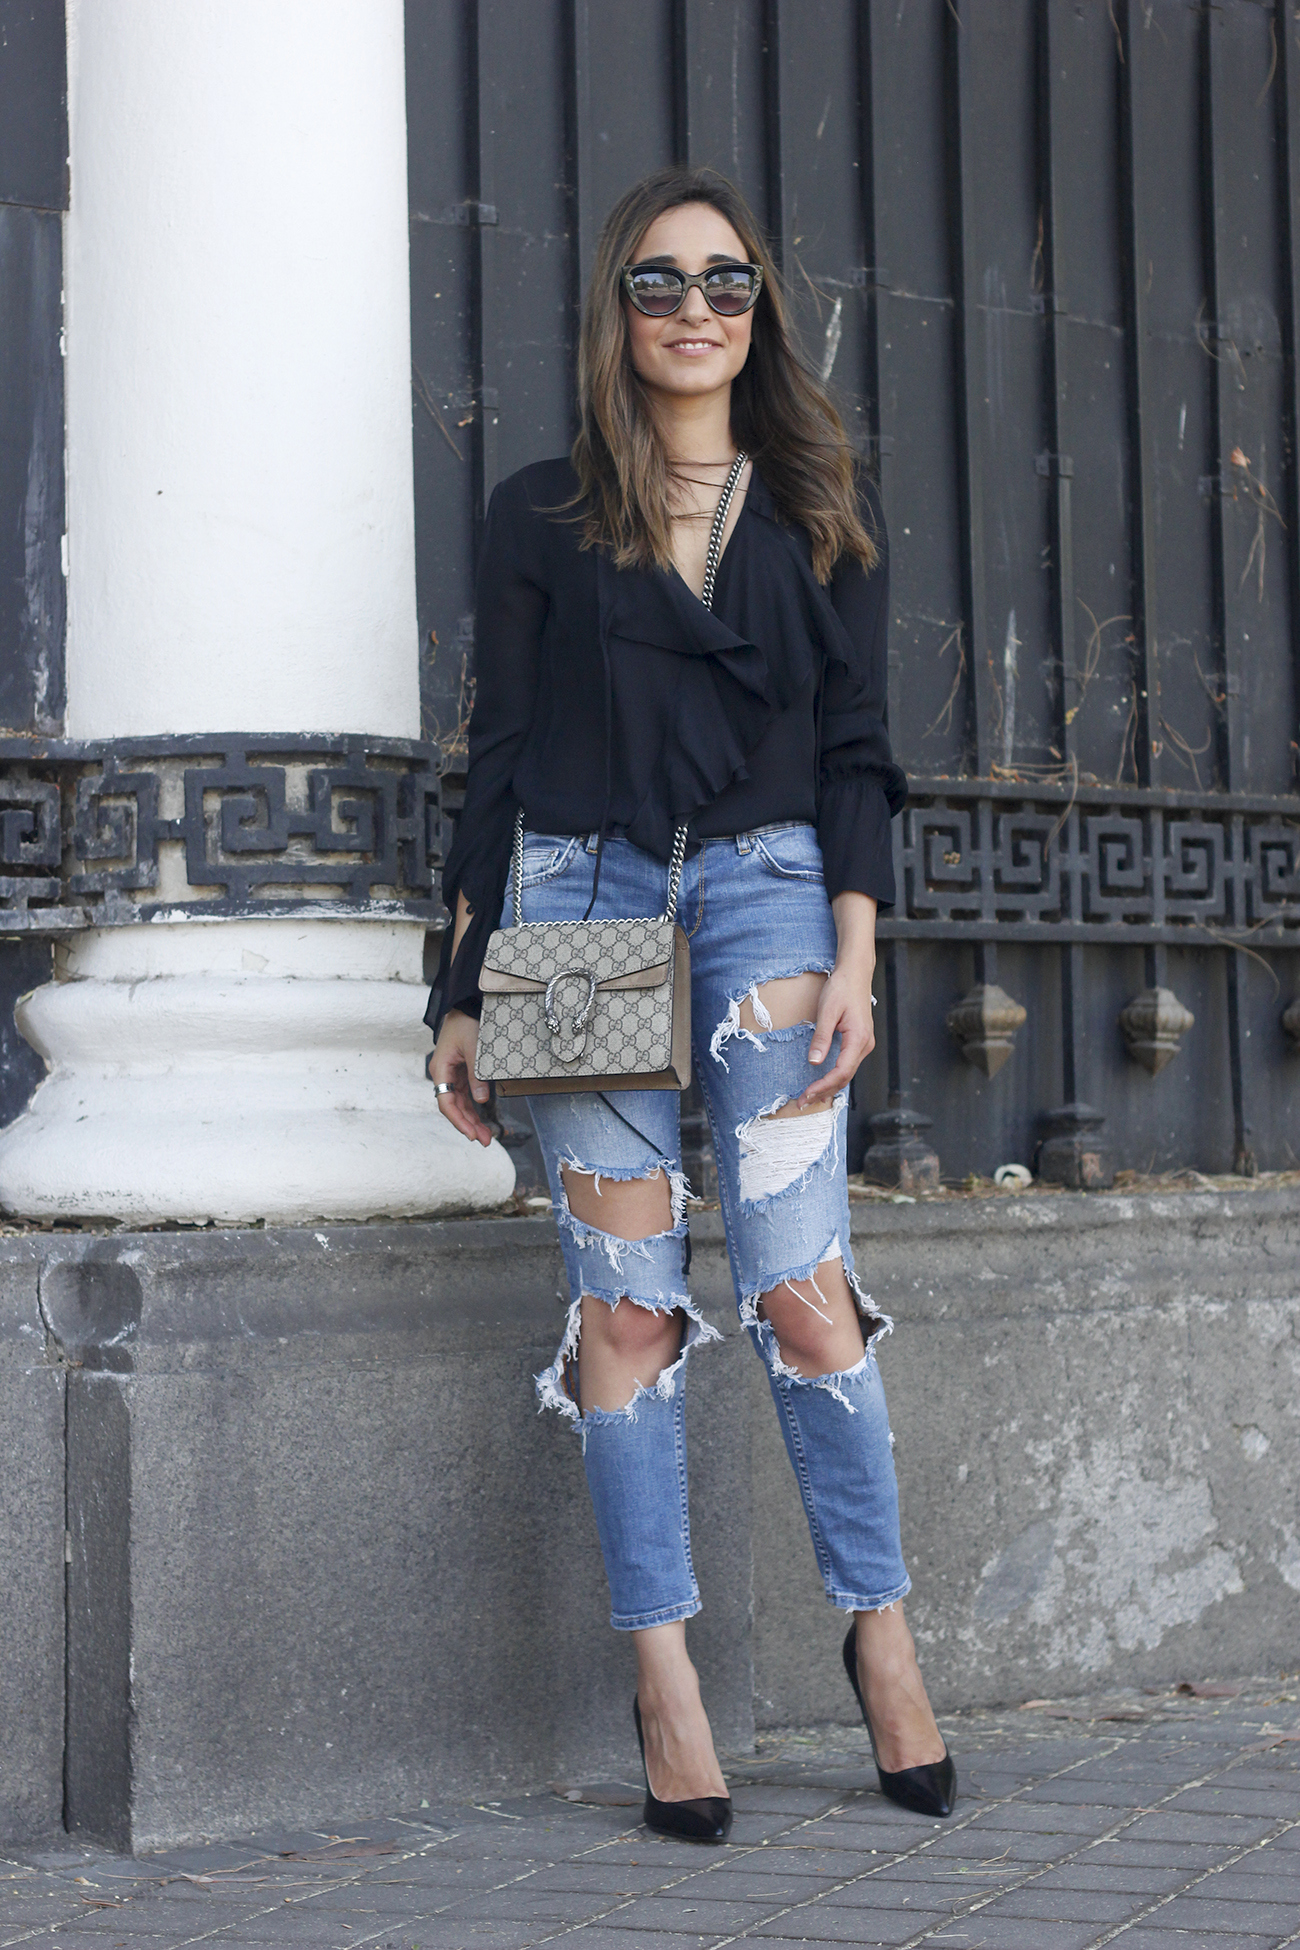 frilled shirt ripped jeans black heels gucci bag summer outfit sunnies04